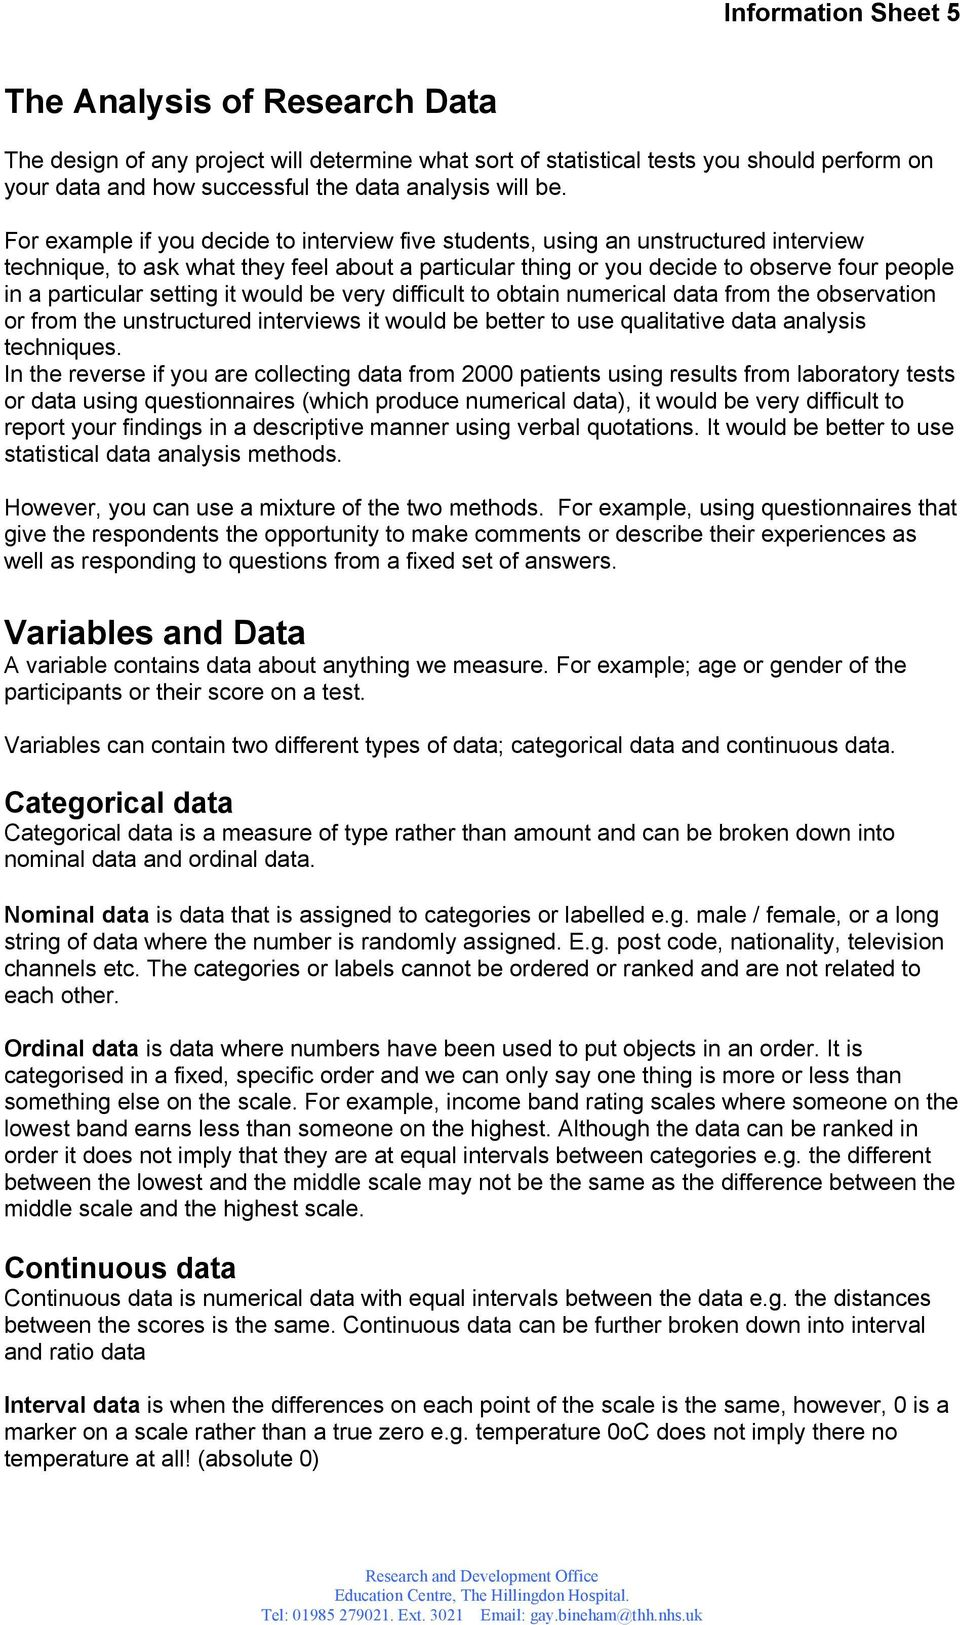 setting it would be very difficult to obtain numerical data from the observation or from the unstructured interviews it would be better to use qualitative data analysis techniques.